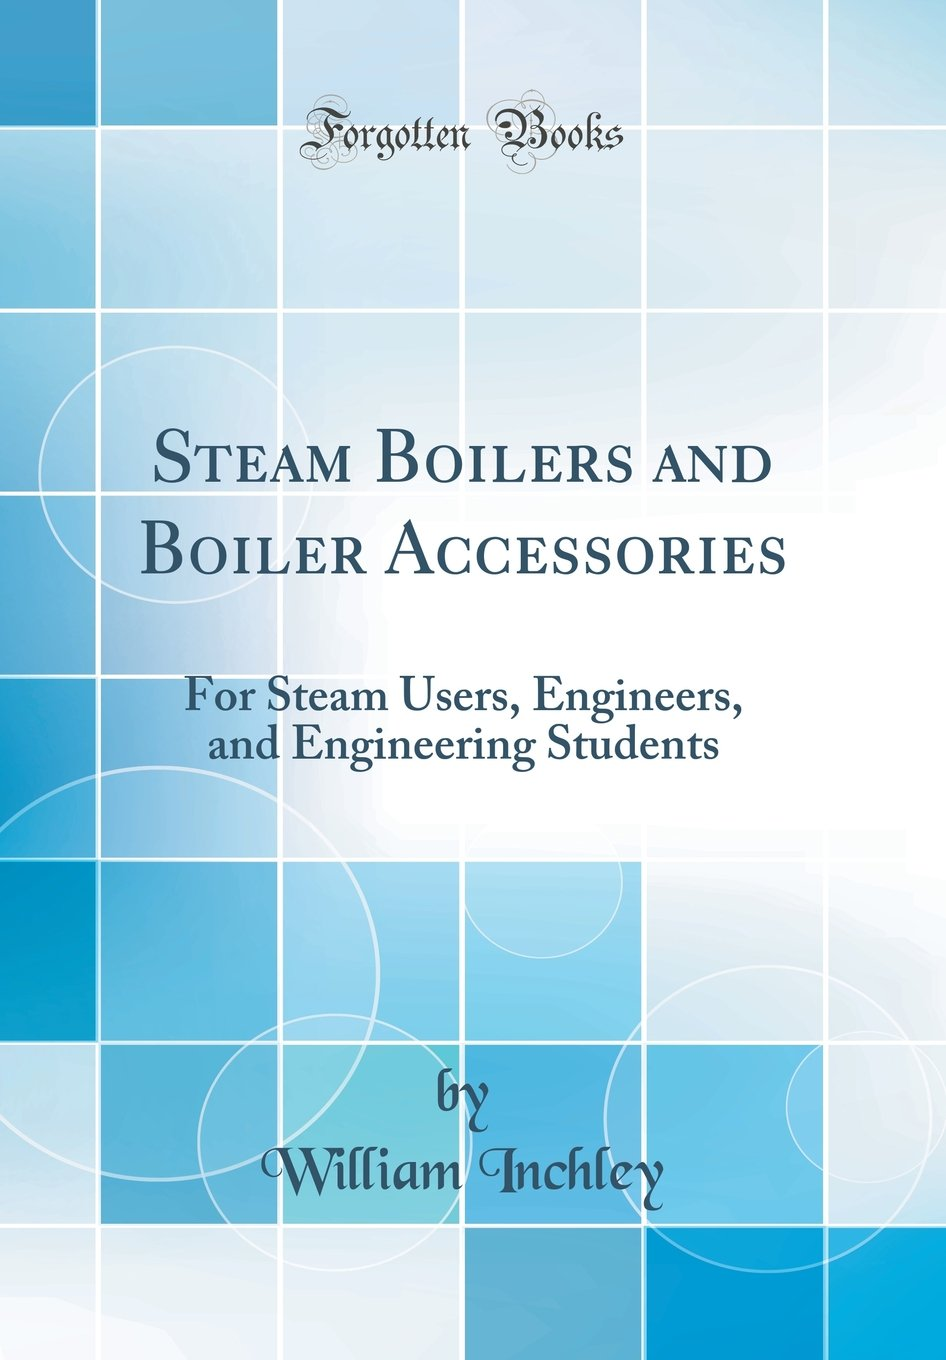 Buy Steam Boilers and Boiler Accessories: For Steam Users, Engineers ...